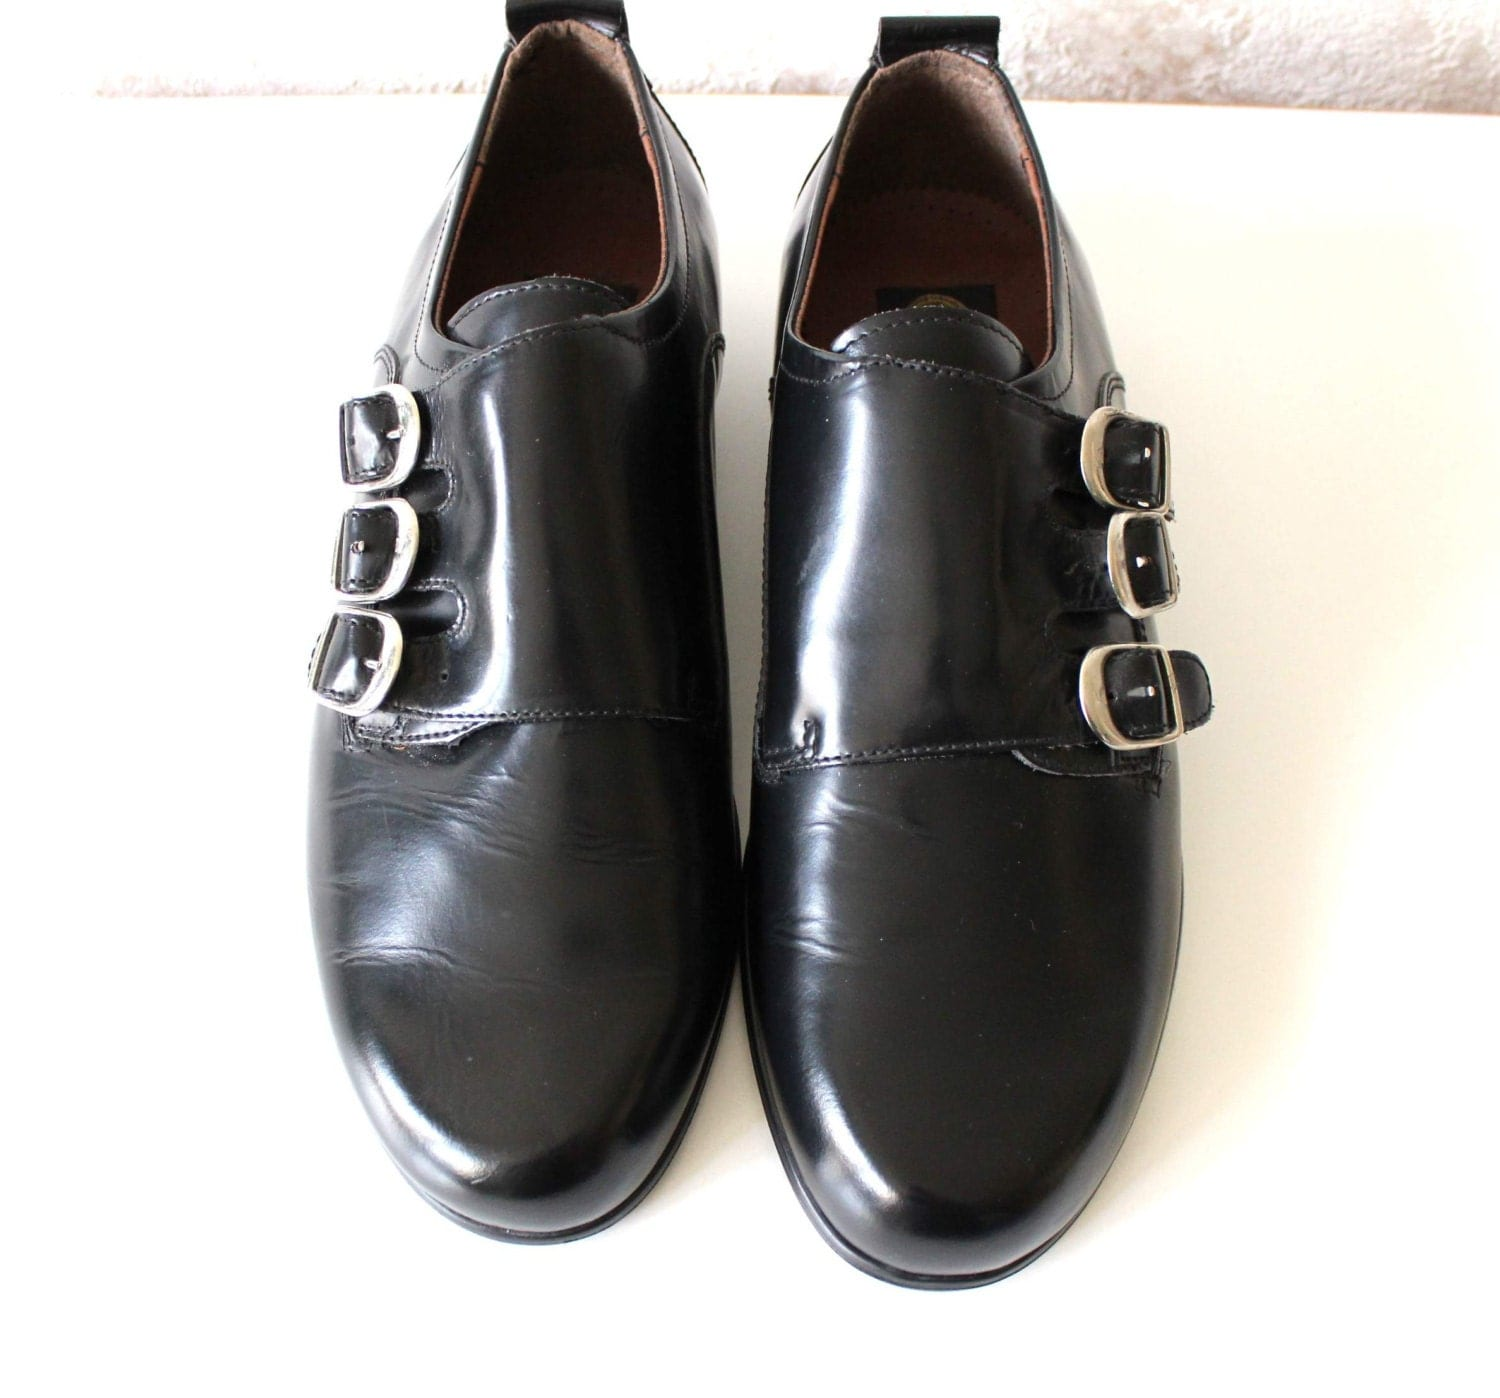 shiny black leather monk dress shoes with metal buckles eu